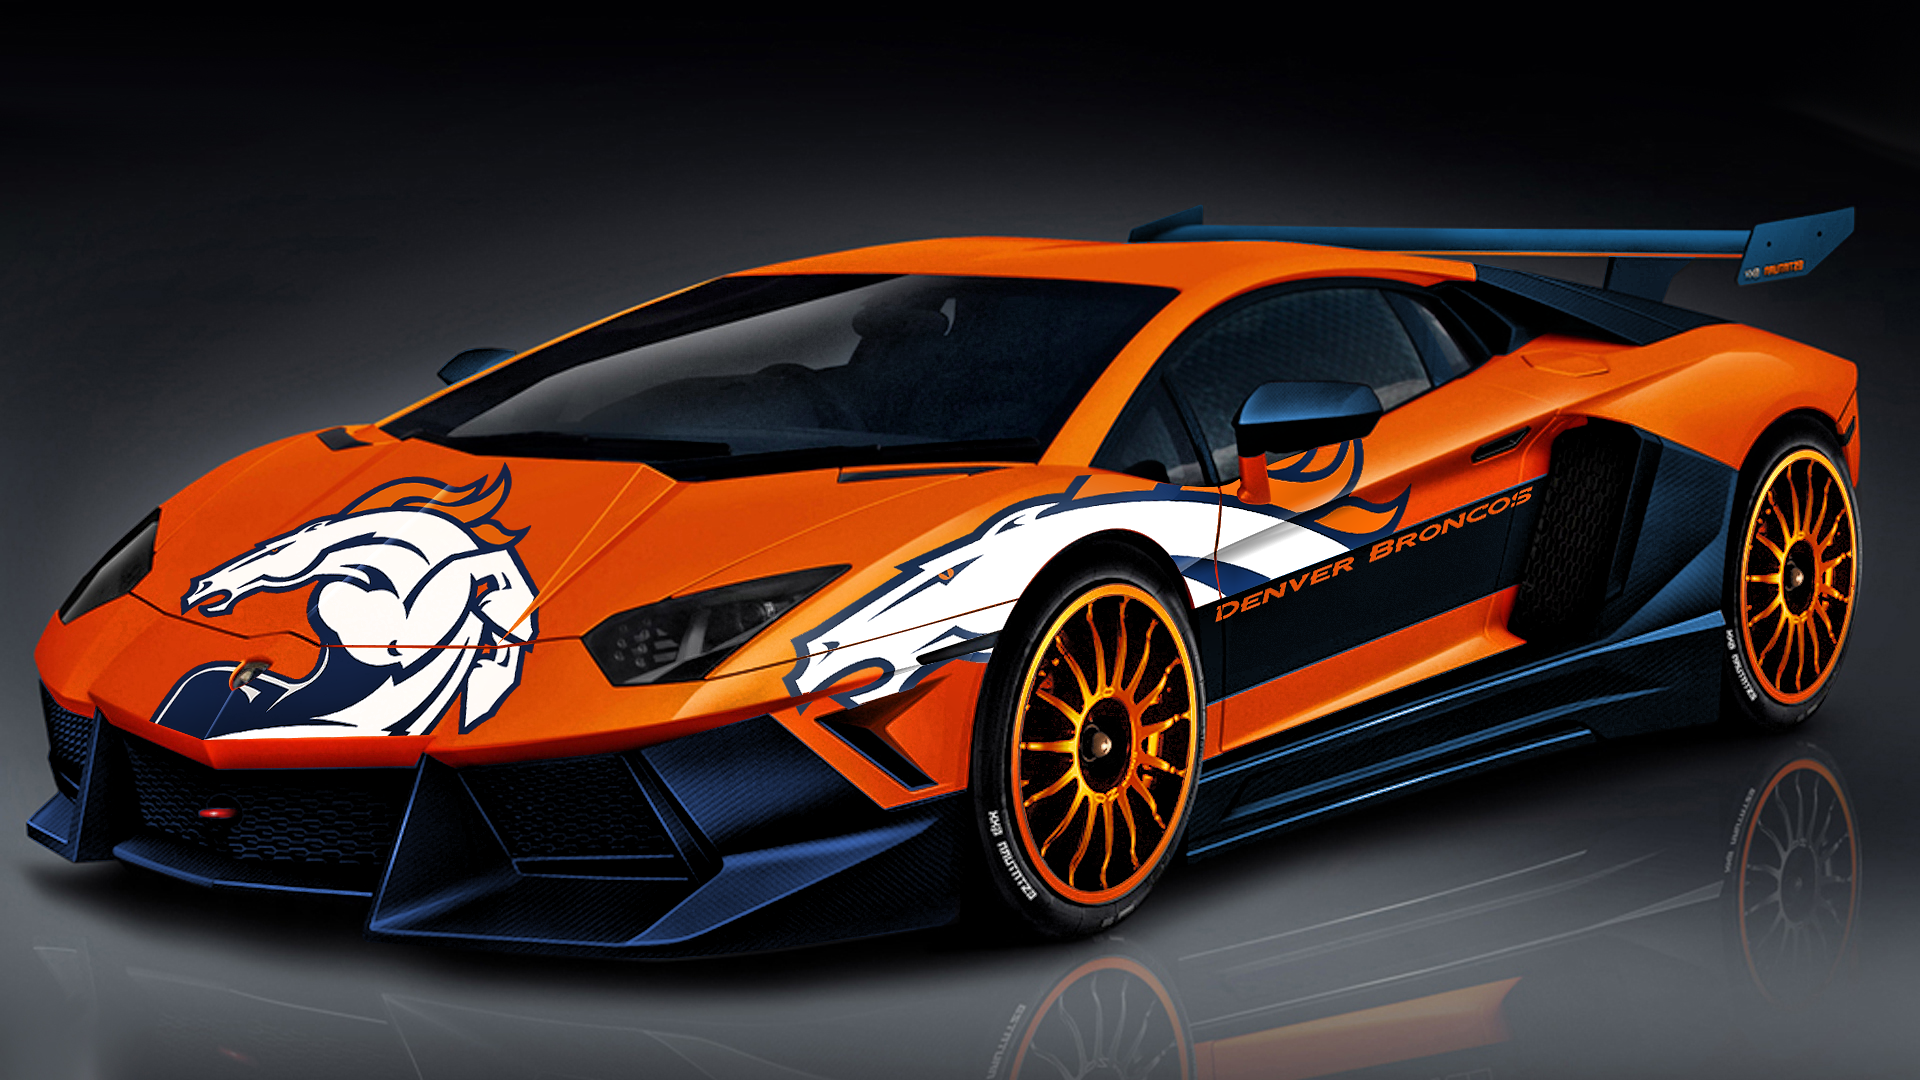 Broncos lamborghini by denversportswalls on deviantart broncos lamborghini by denversportswalls broncos lamborghini by denversportswalls voltagebd Image collections